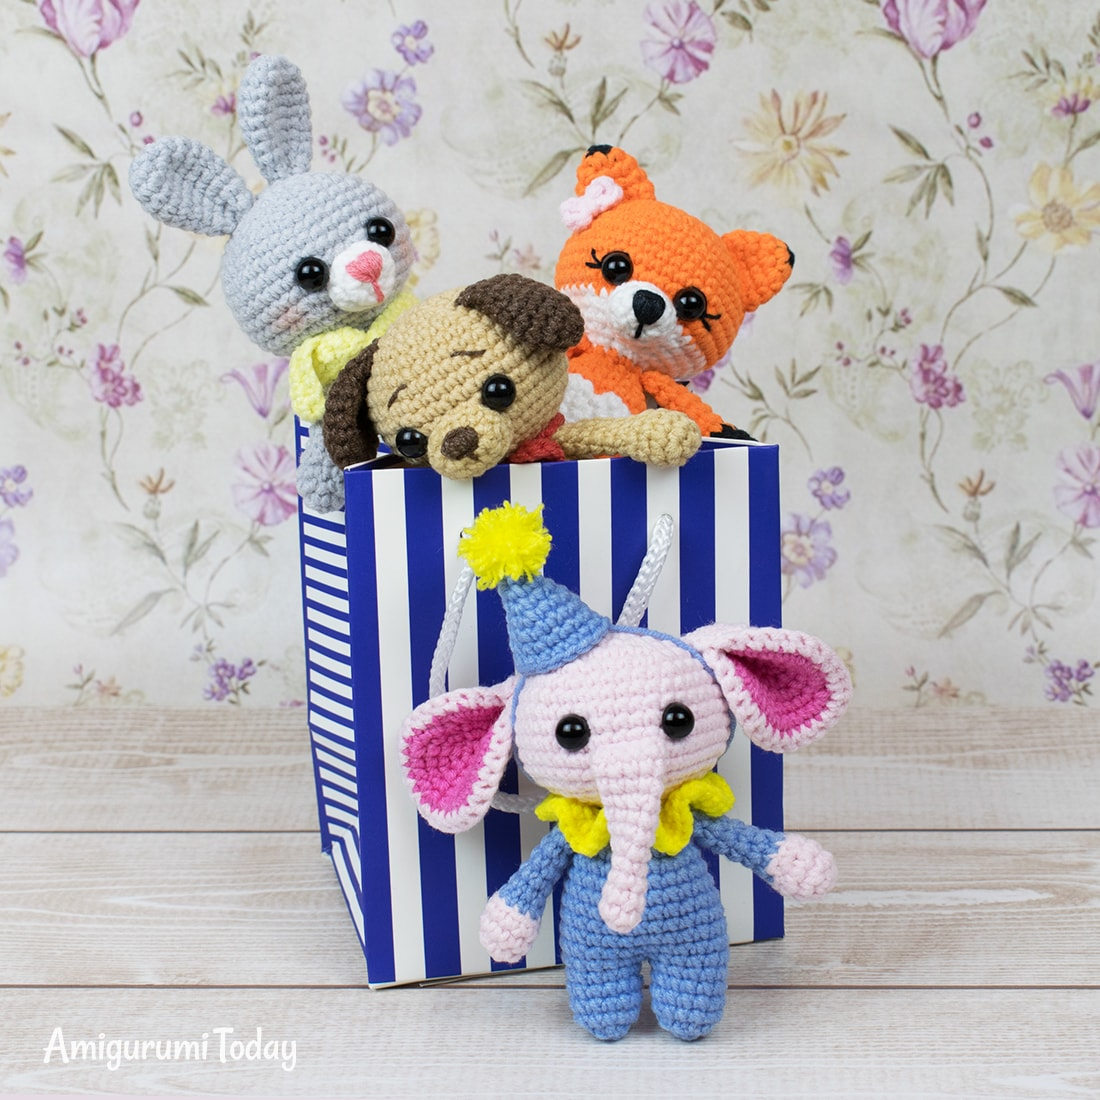 Free tiny elephant amigurumi pattern by Amigurumi Today